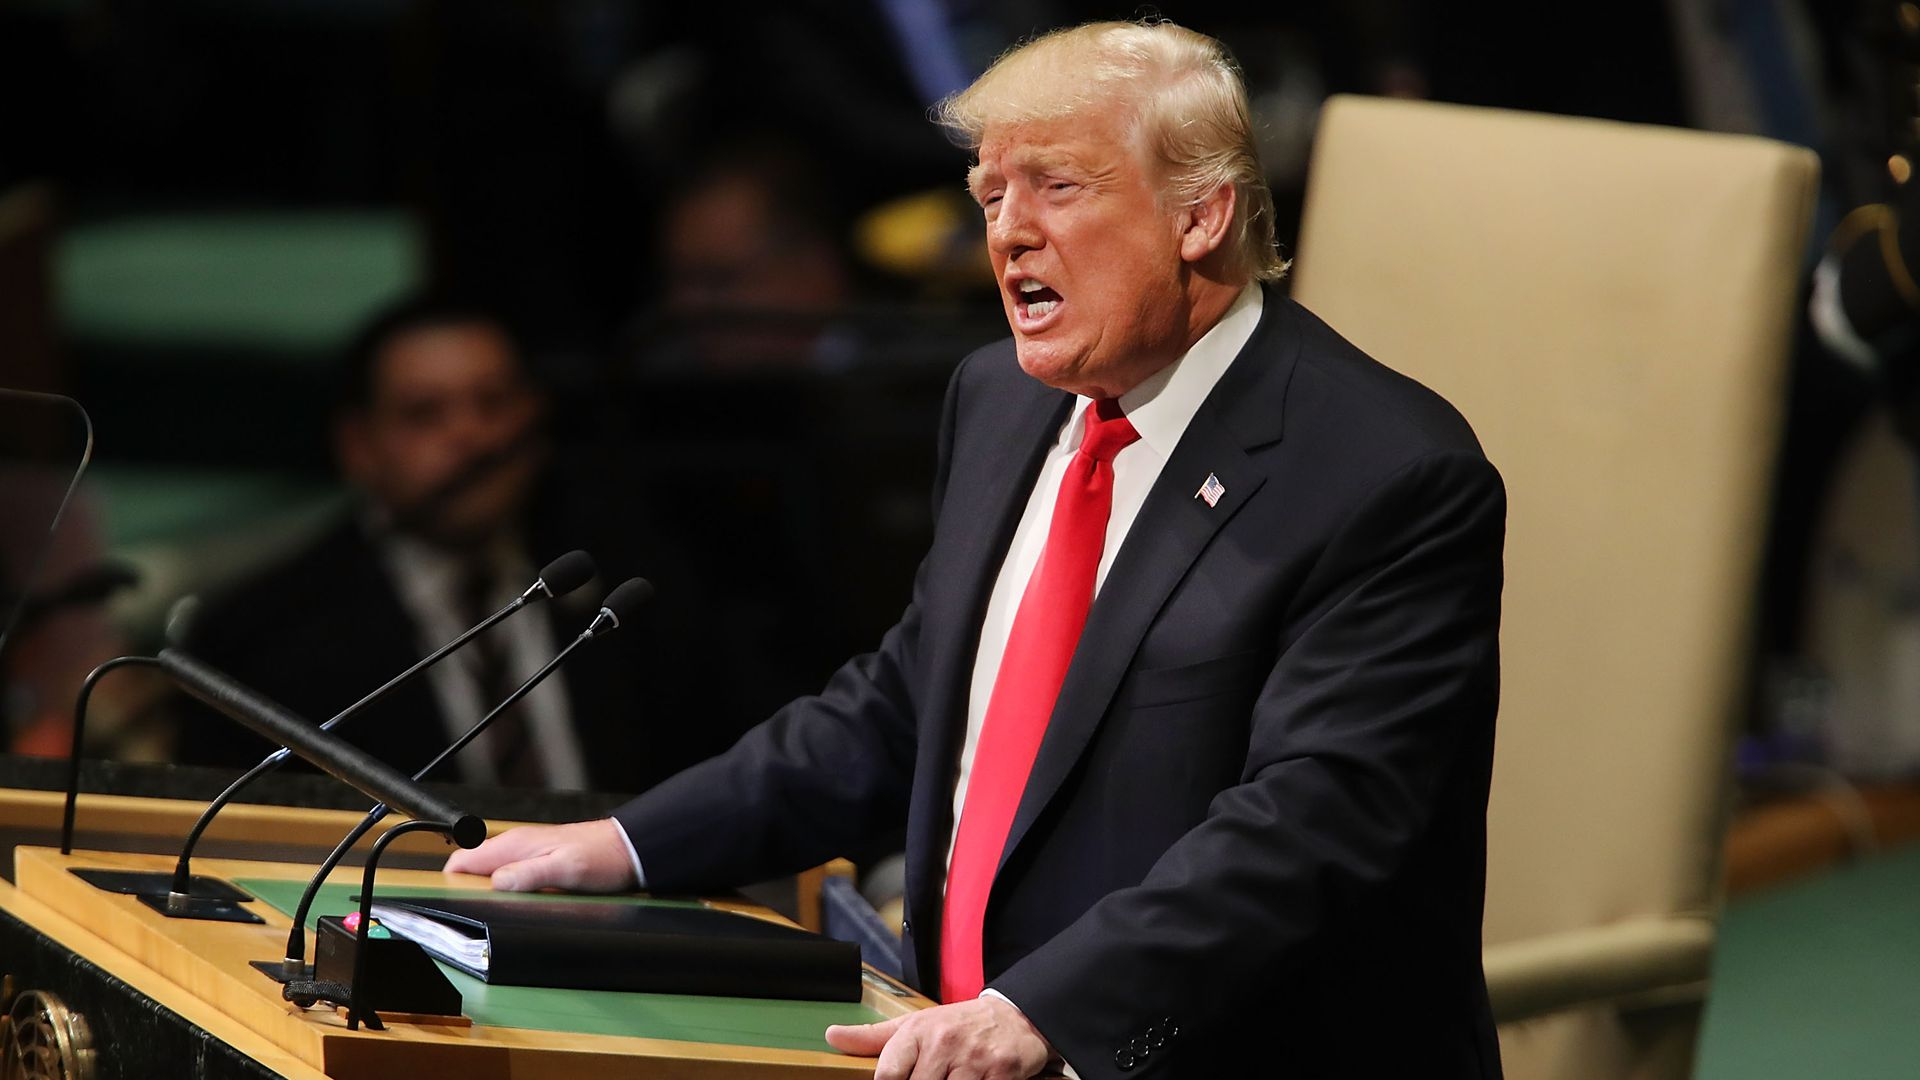 President Donald Trump addresses the 73rd United Nations (U.N.) General Assembly on September 25, 2018 in New York City.